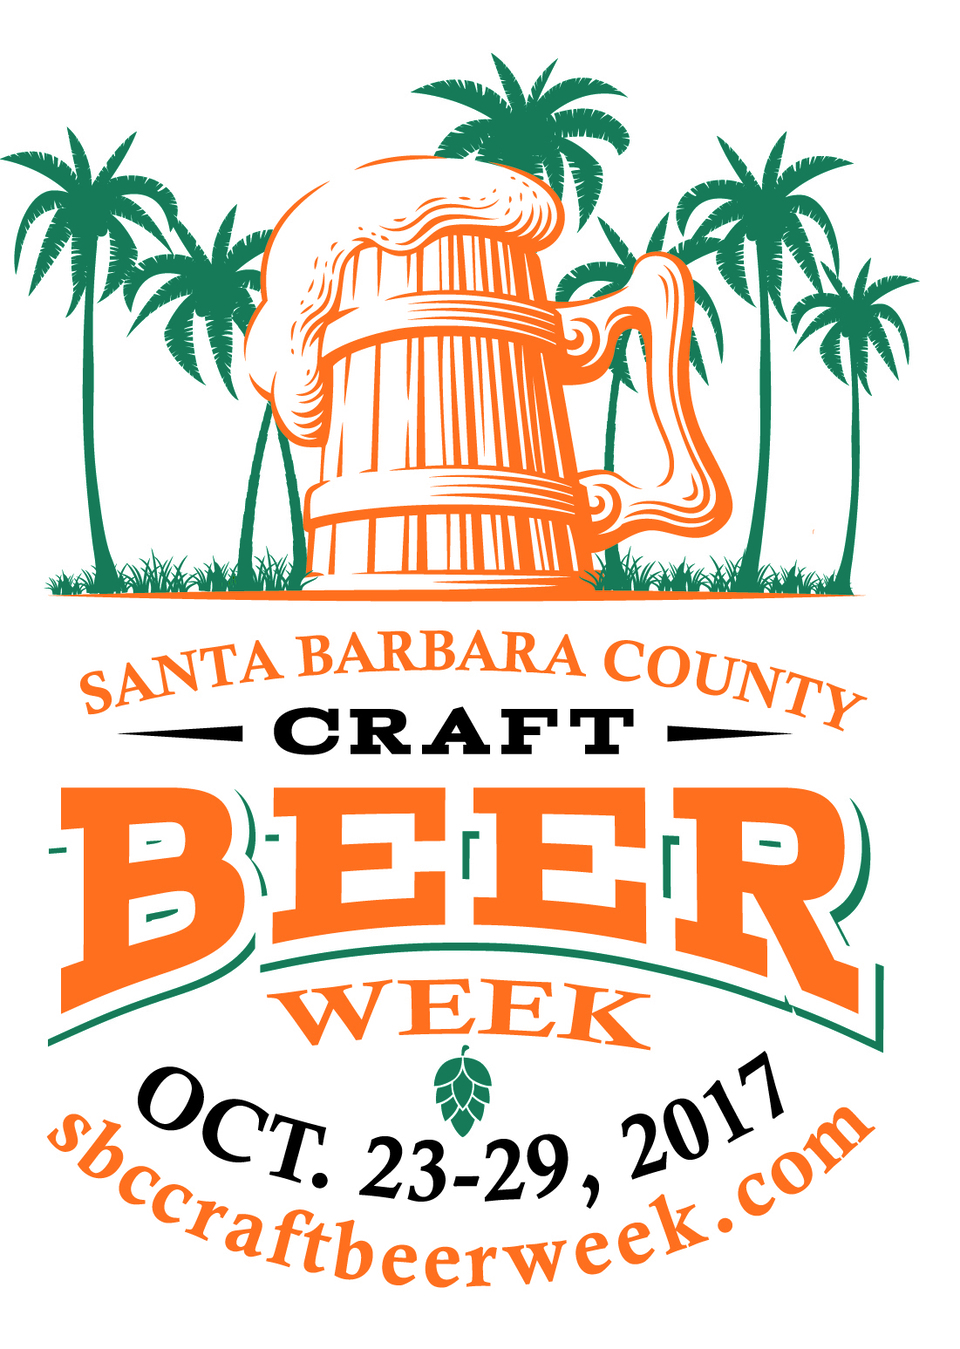 Craftbeerweek logo2017 clear